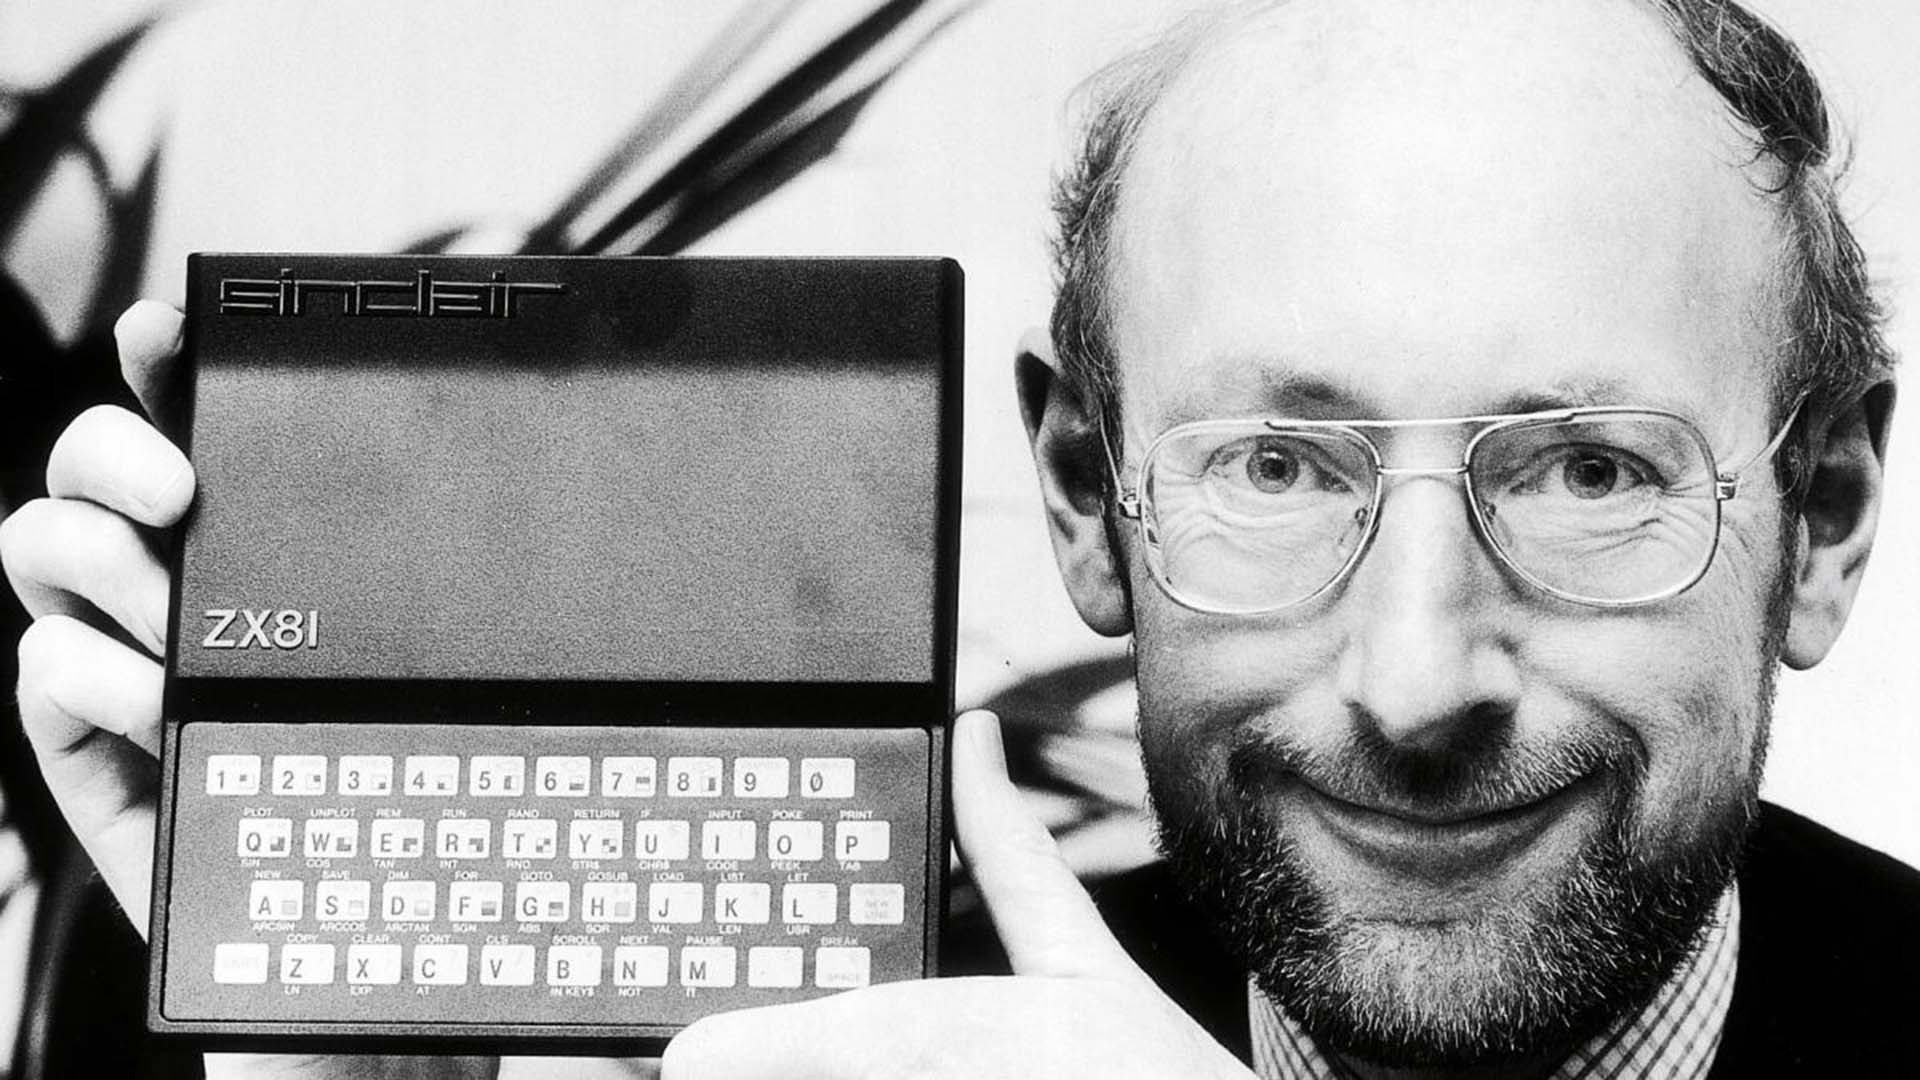 Sir Clive Sinclair with the iconic ZX81 computer.